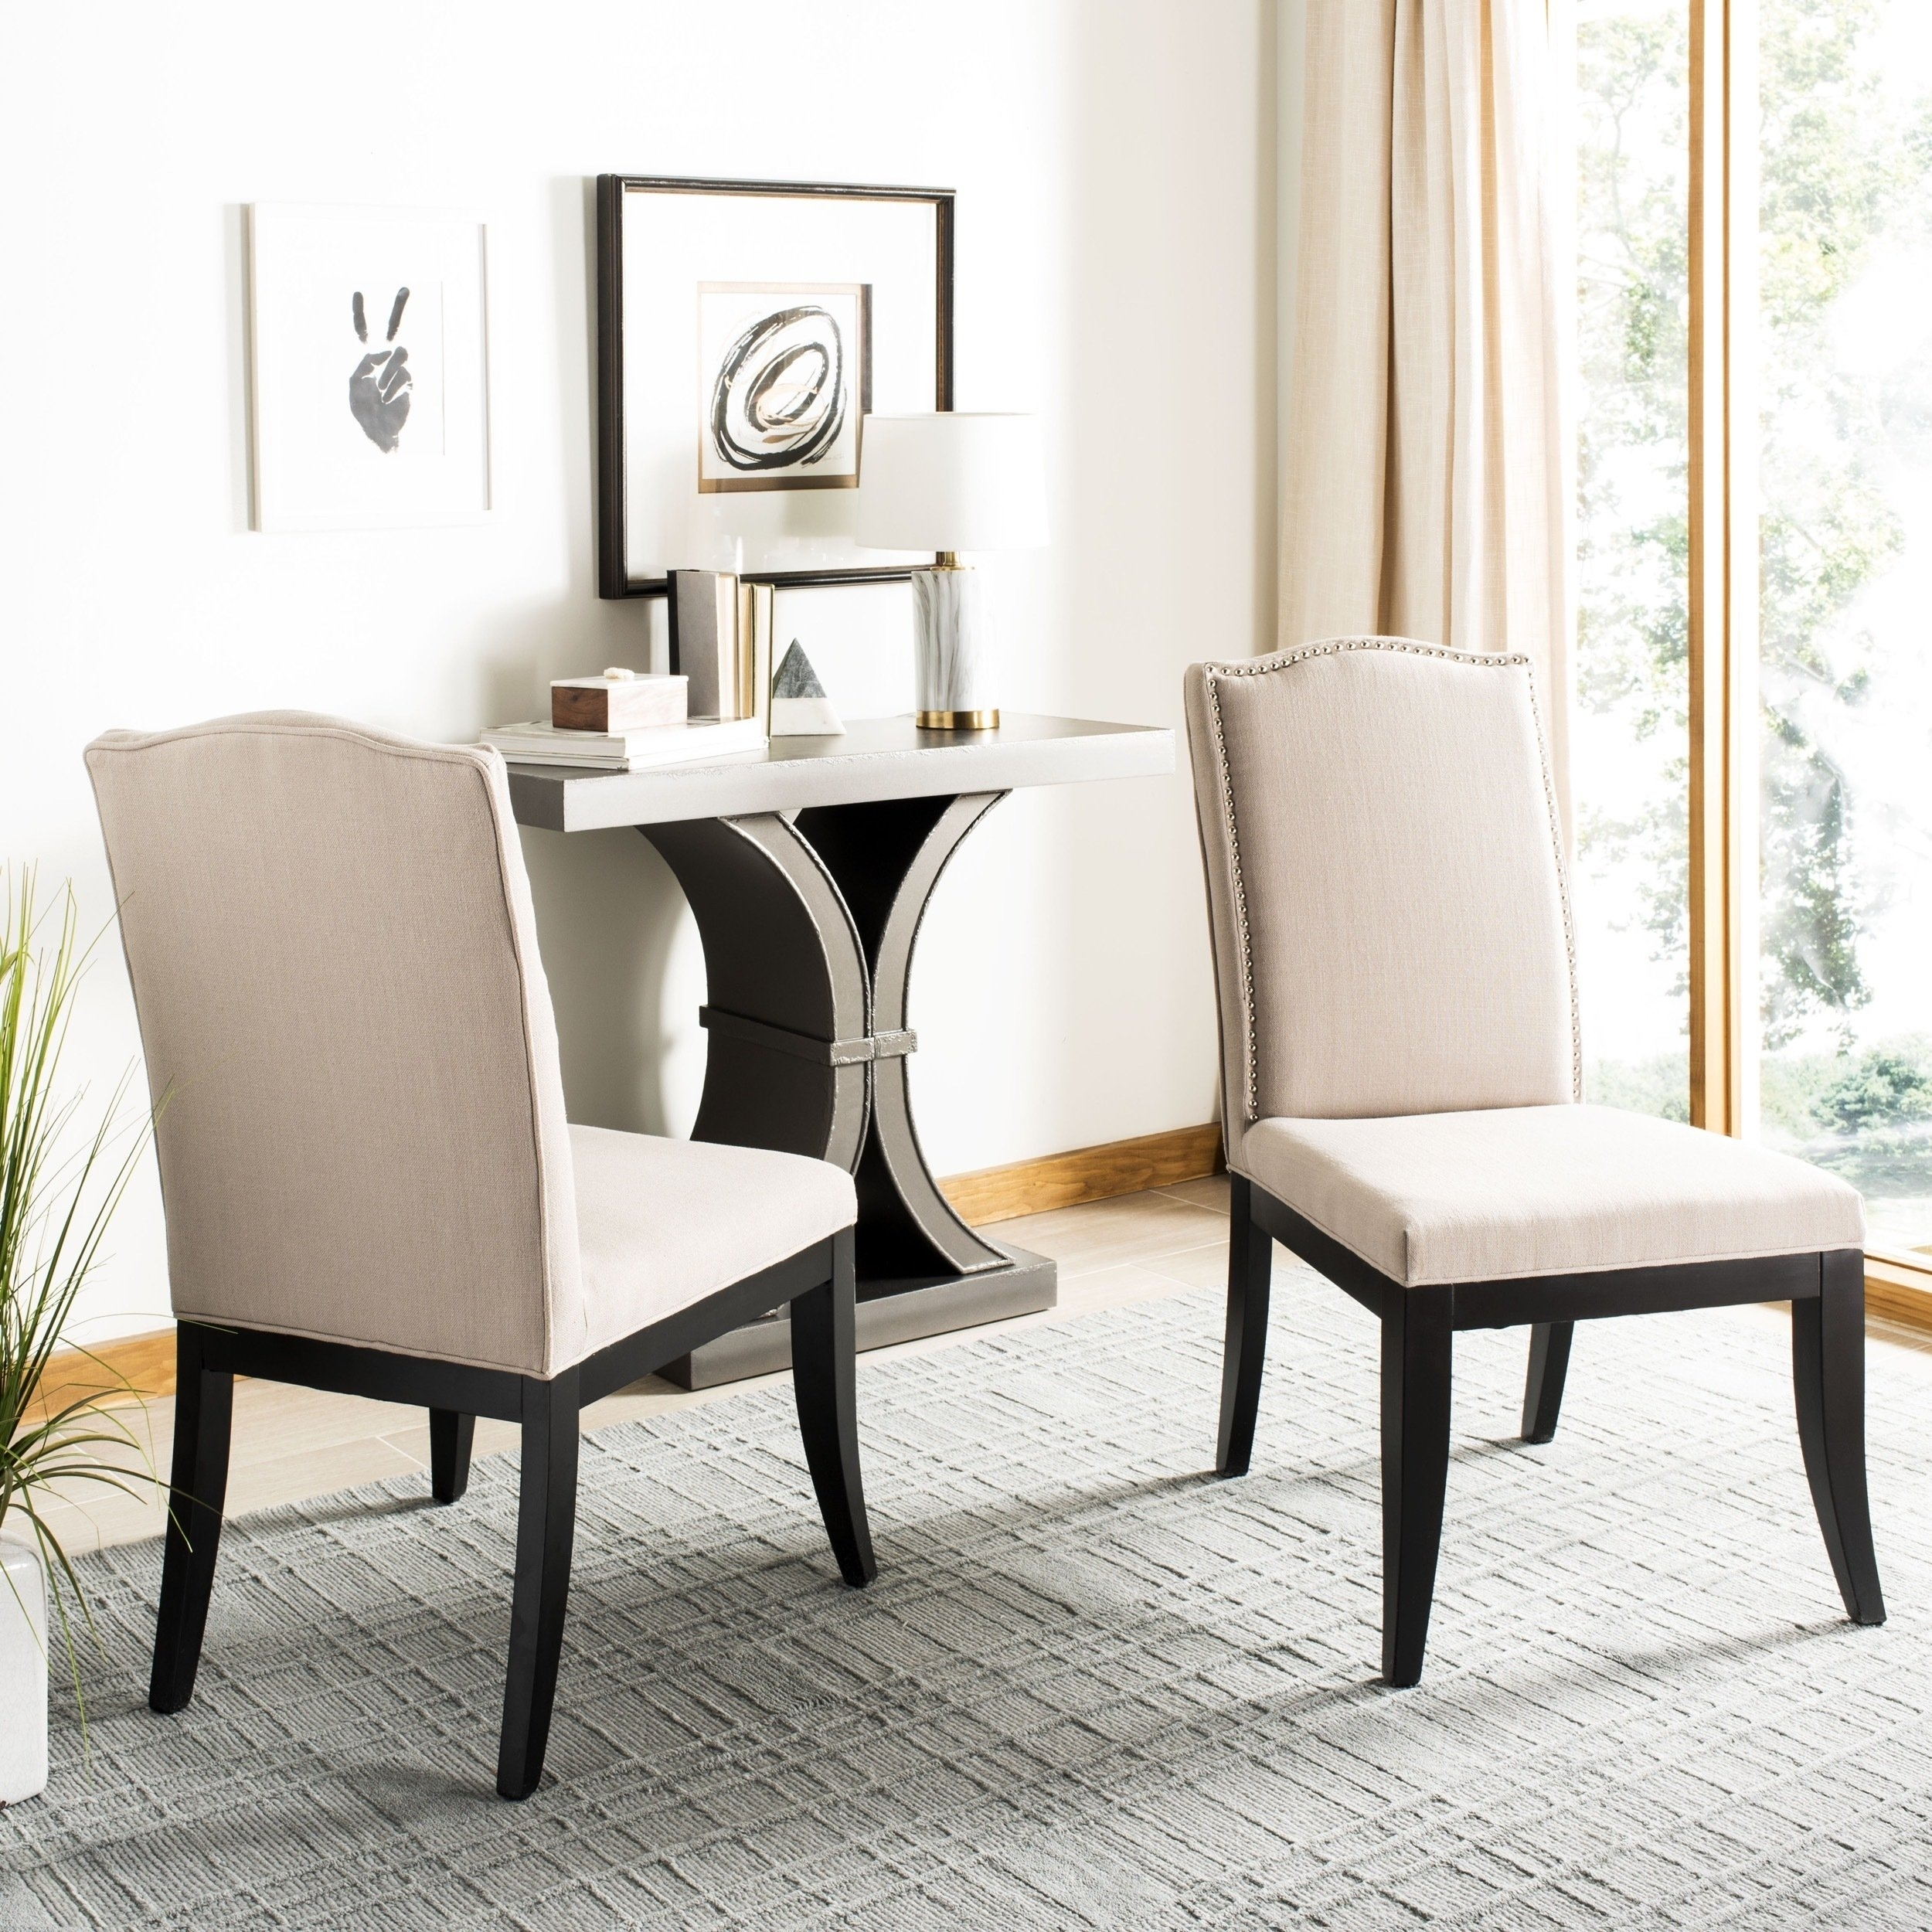 Safavieh En Vogue Dining Laurent Taupe Nailhead Dining Chairs (Set With Regard To Preferred Laurent Upholstered Side Chairs (#17 of 20)